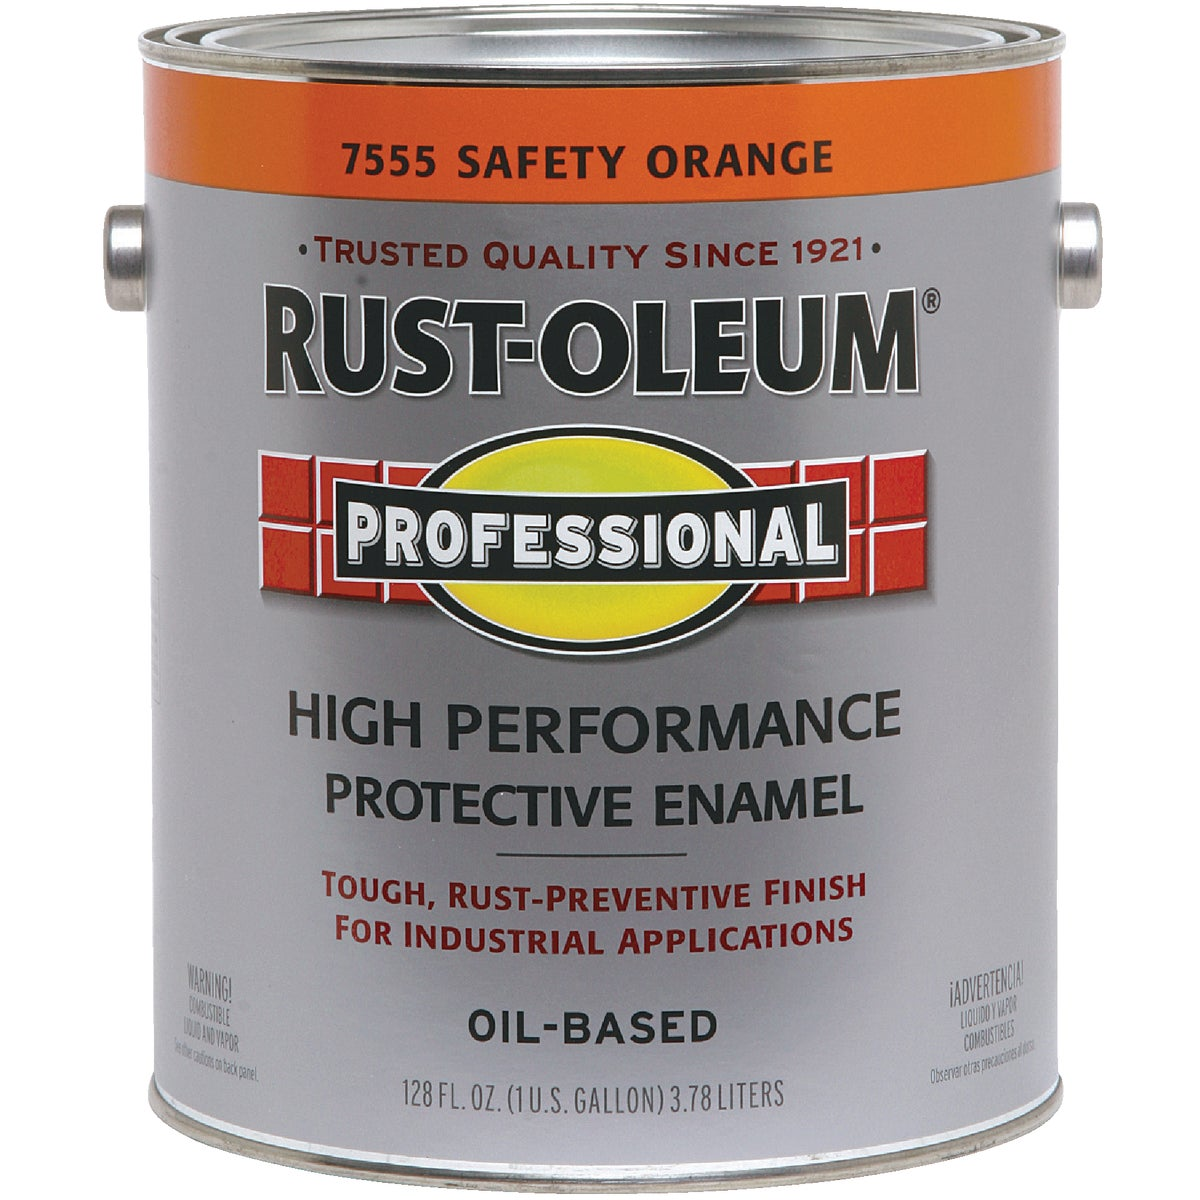 SAFETY ORANGE PRO ENAMEL - 7555-402 by Rustoleum